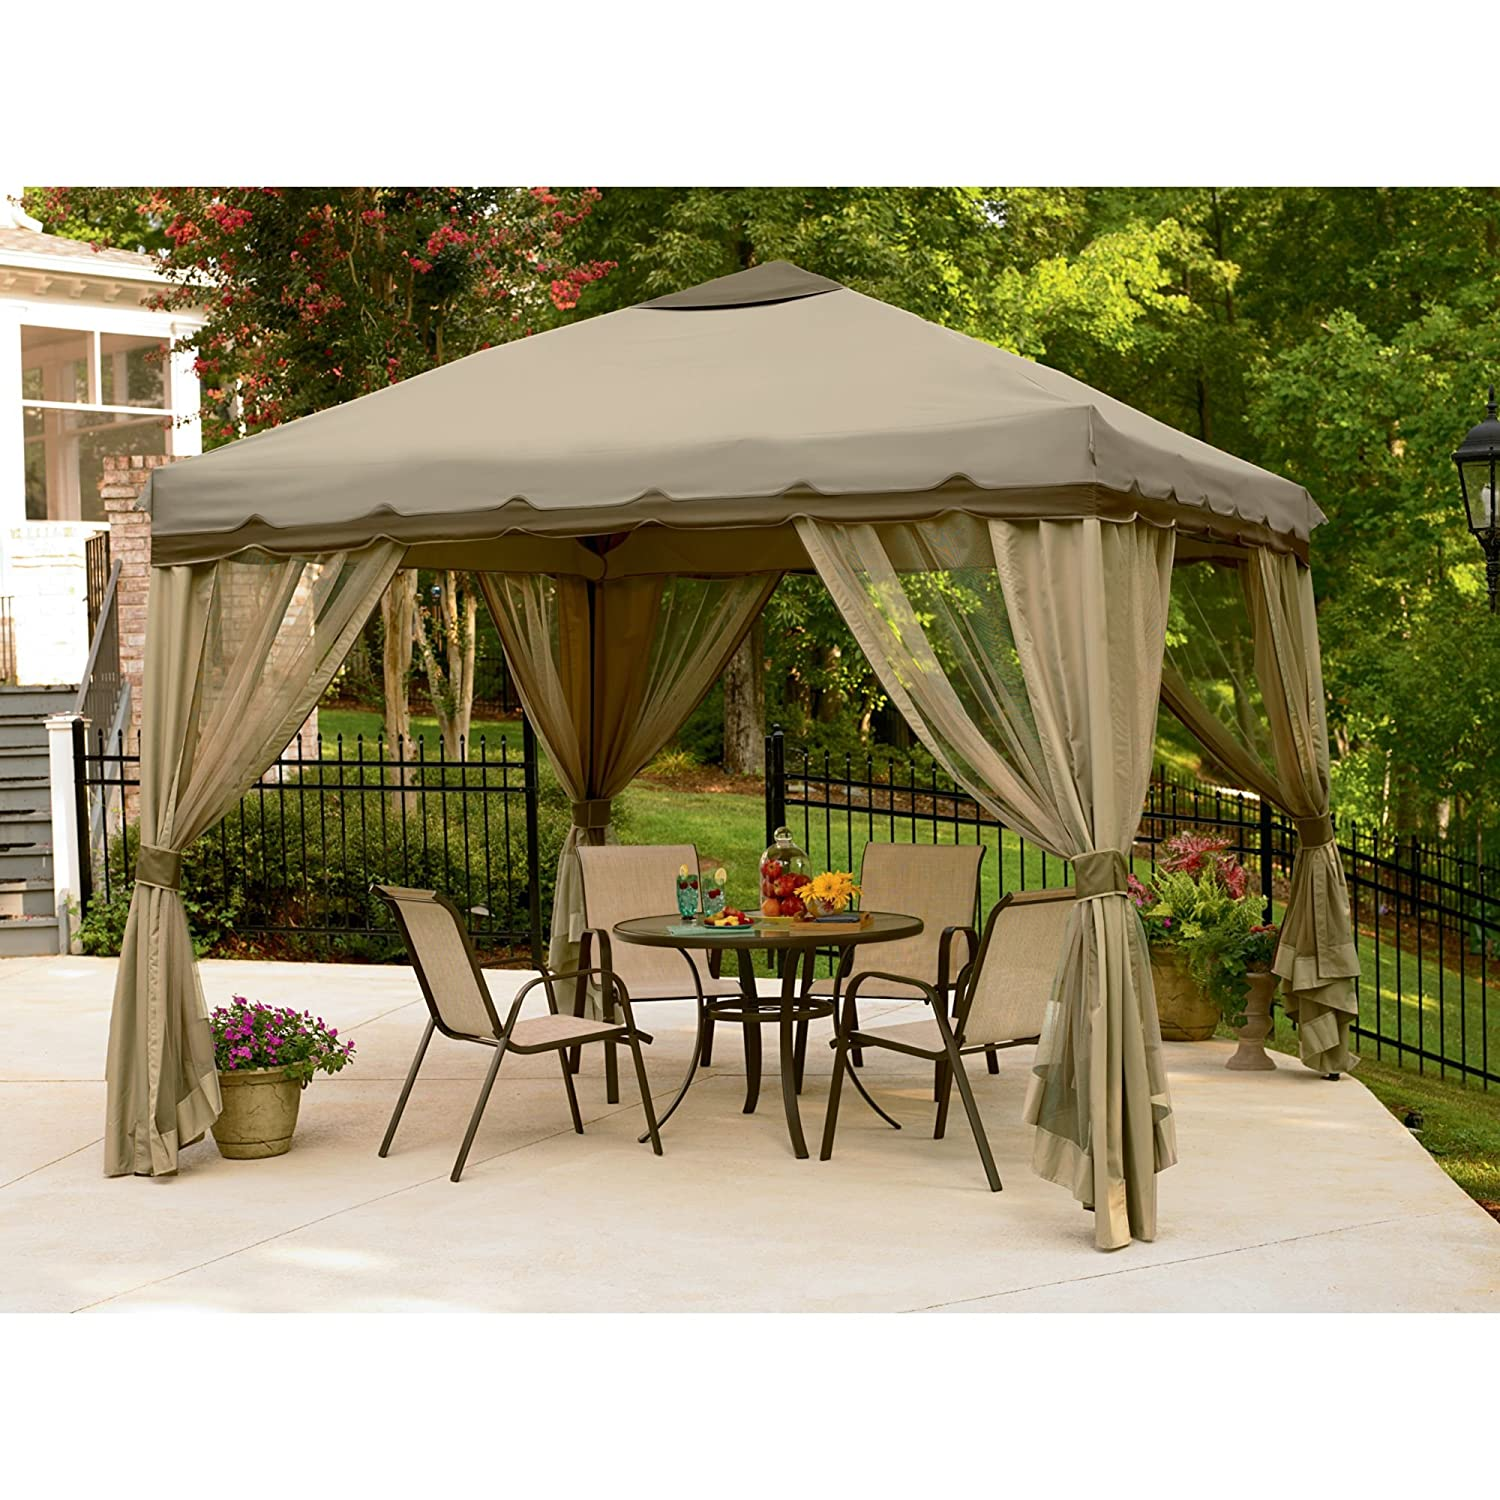 Patio Deck Canopy Home Design Ideas and